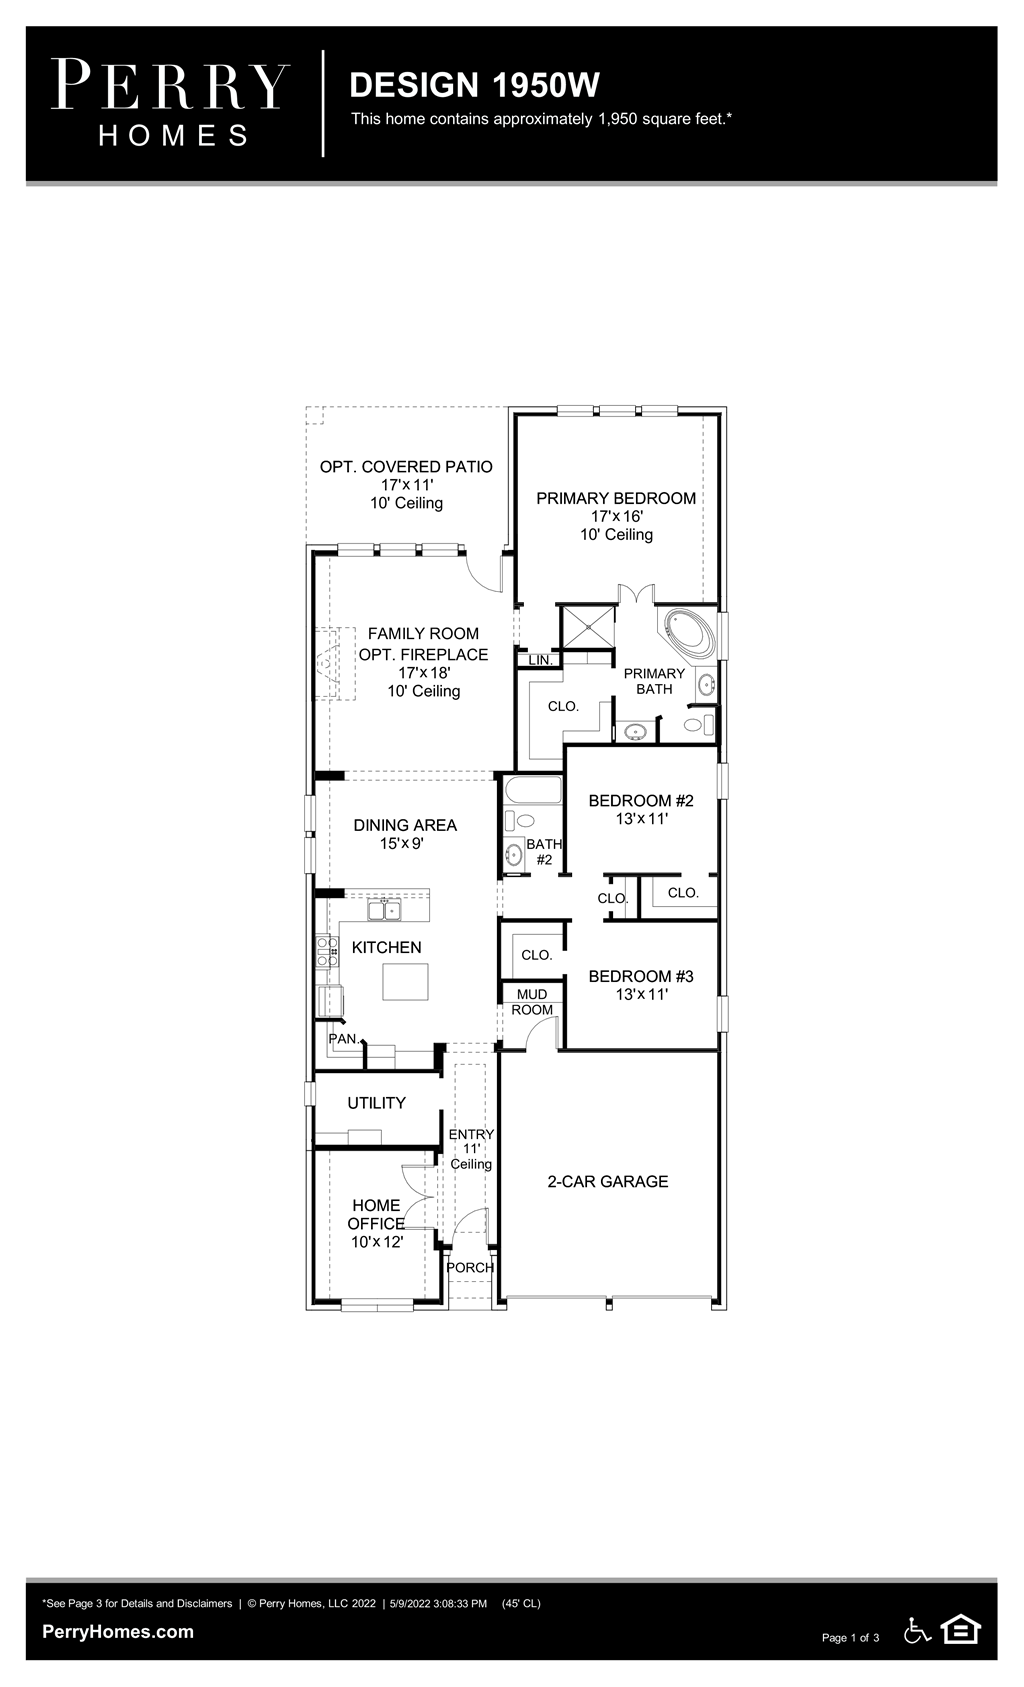 Floor Plan for 1950W